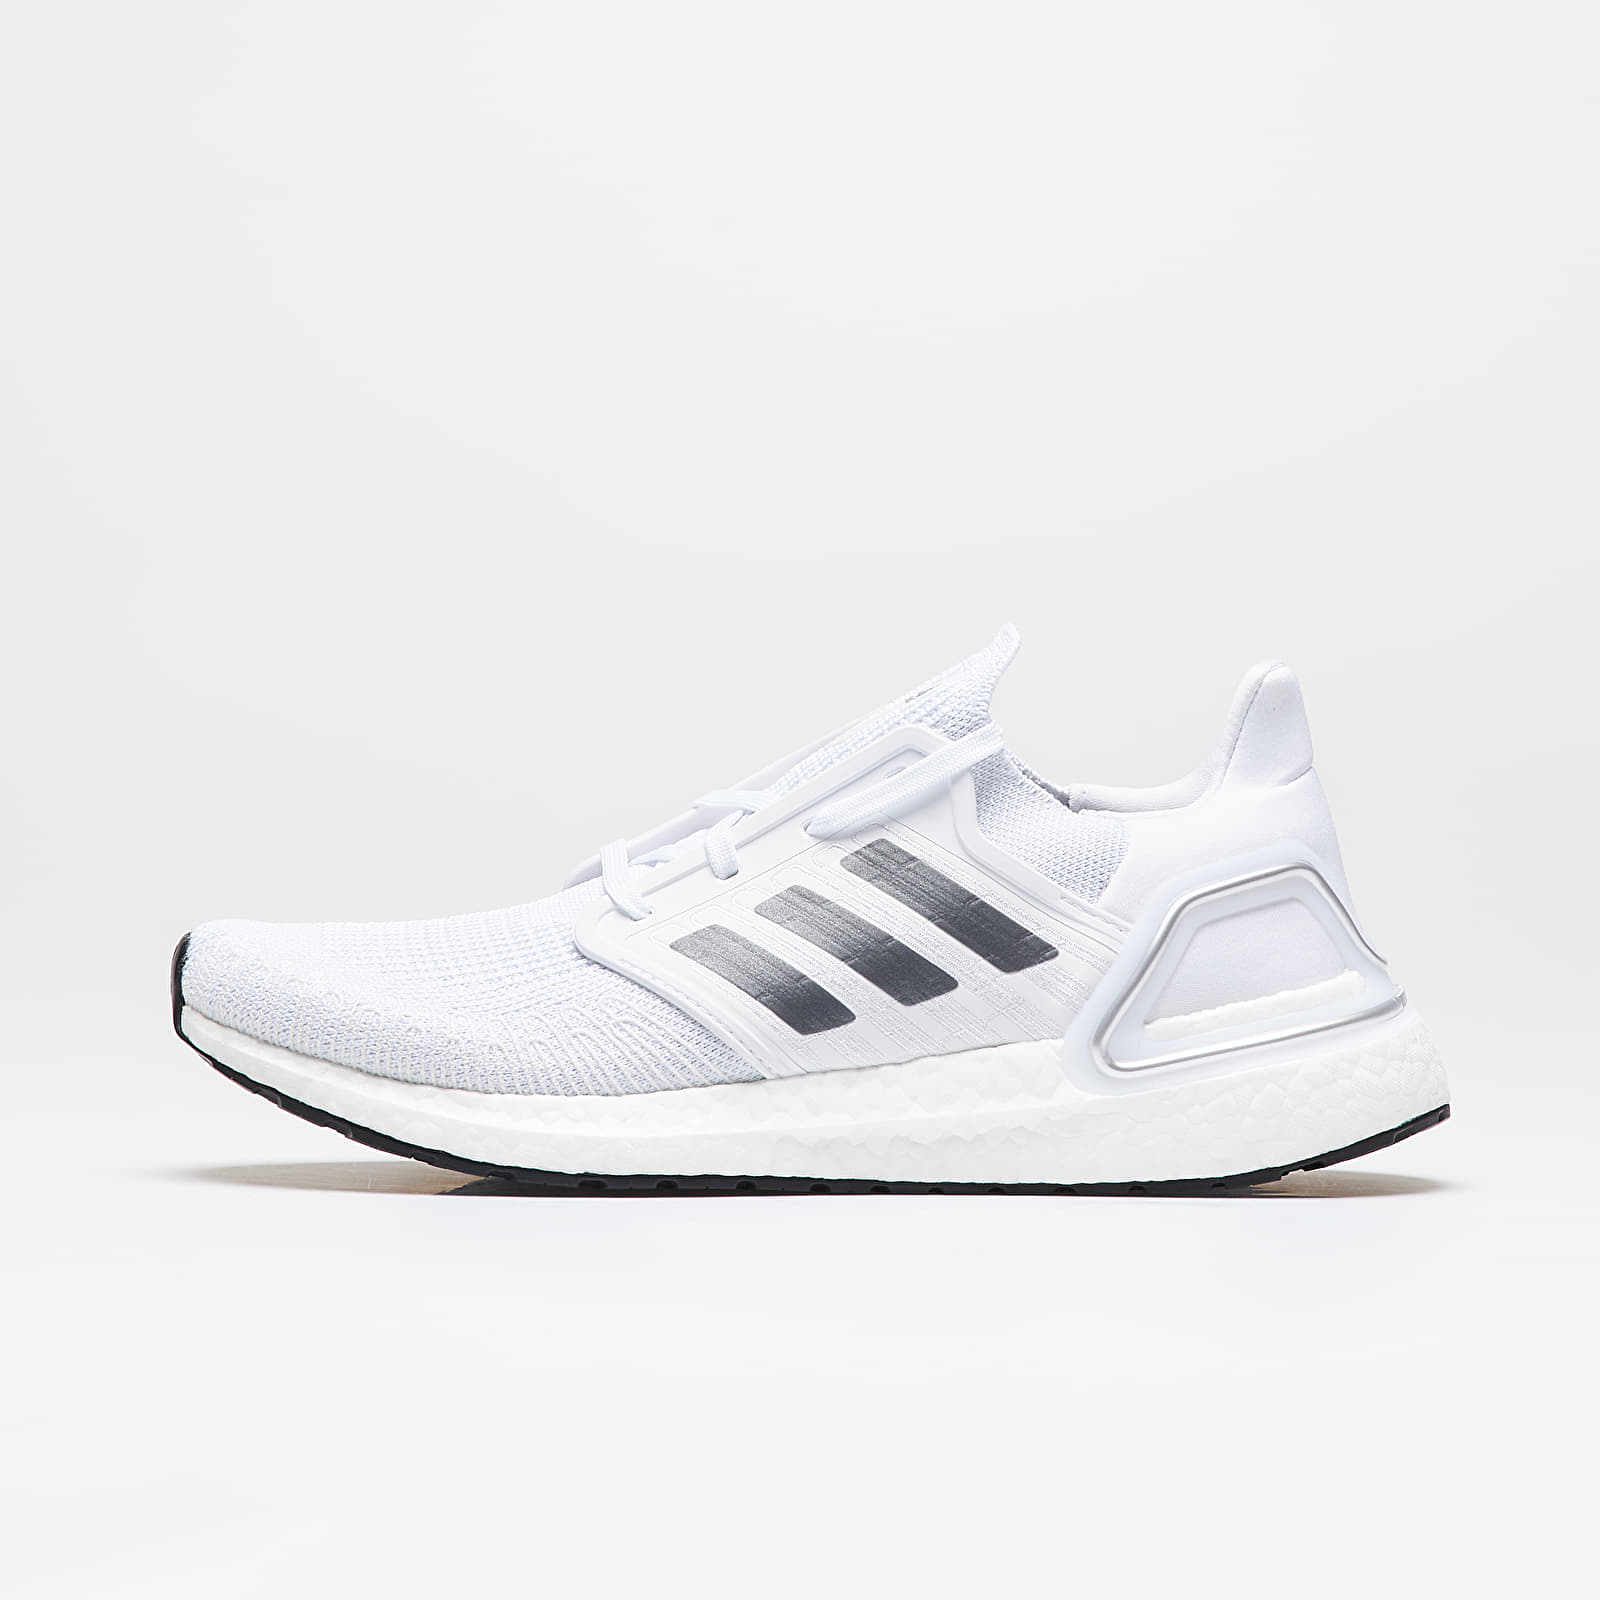 Men's shoes adidas UltraBOOST 20 Ftw White/ Night Metalic/ Dash Grey